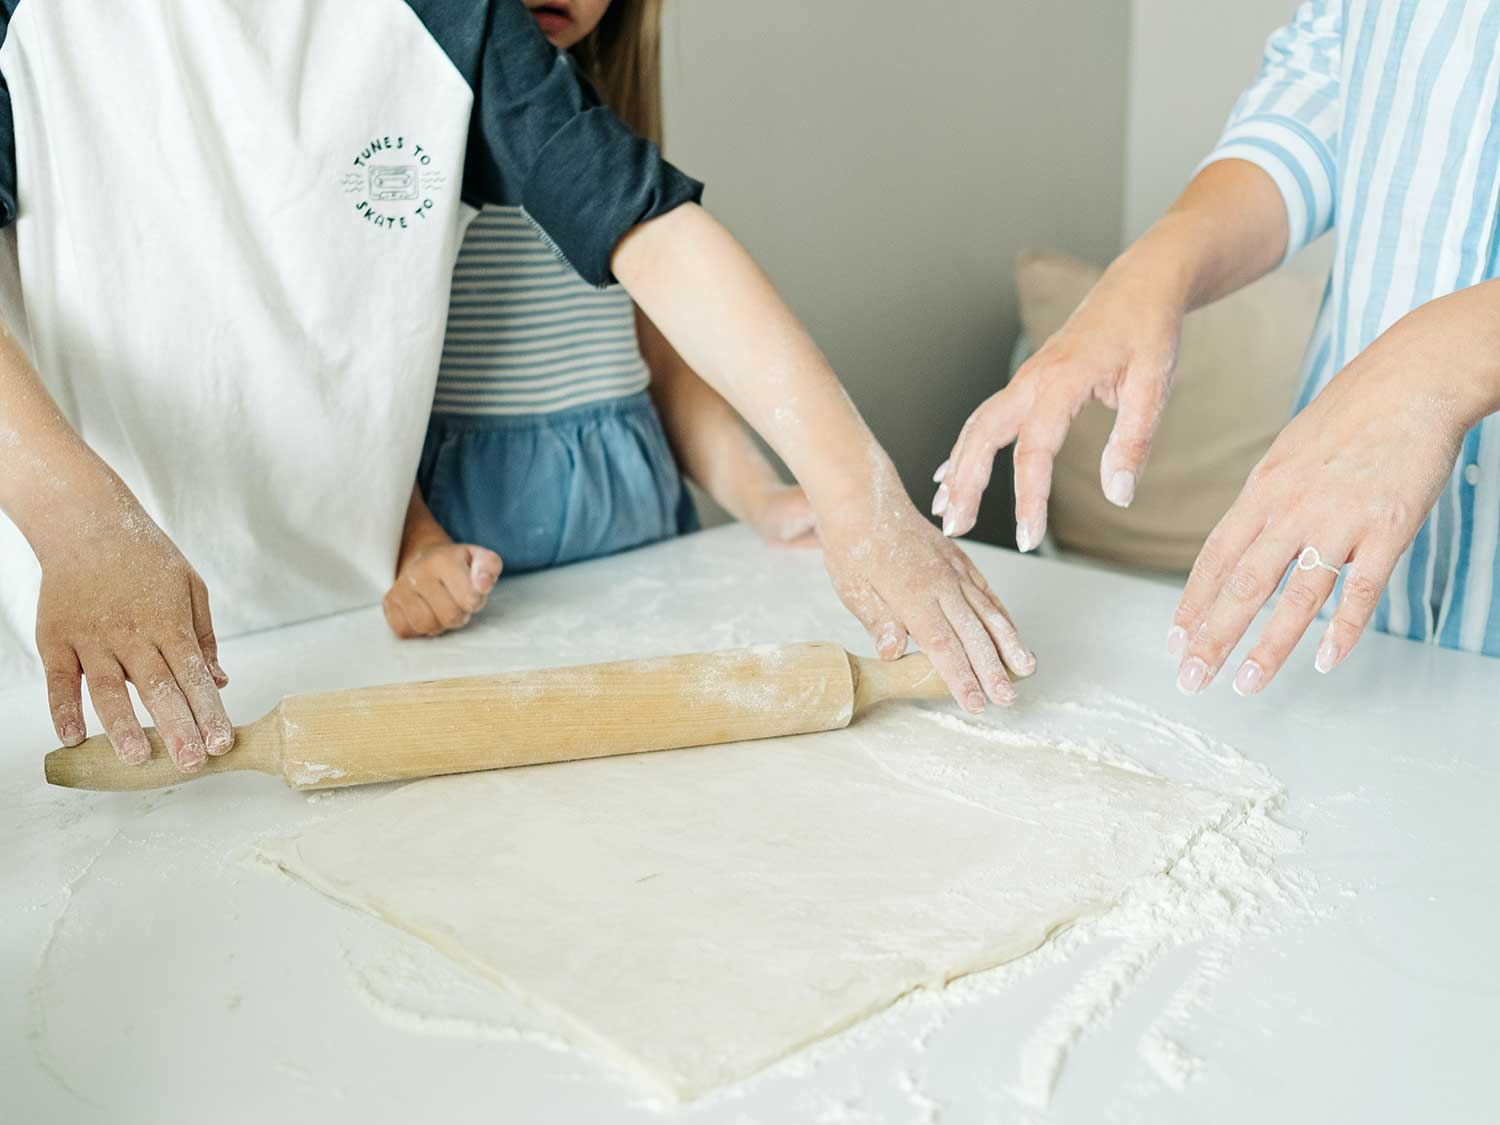 A family uses a rolling pin to flatten dough on kitchen counter.